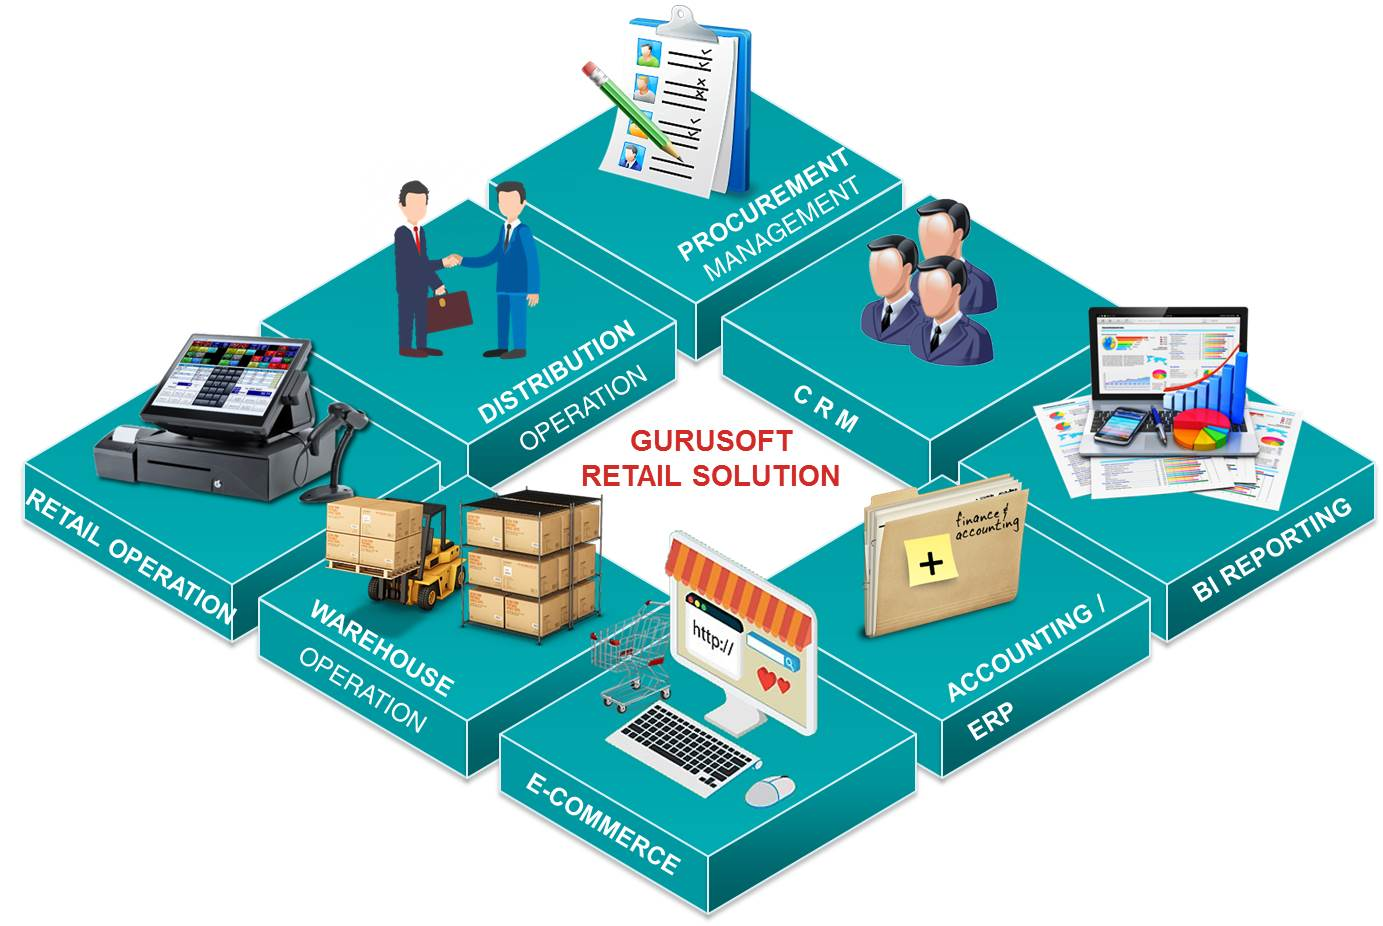 Gurusoft Retail Solution:POS Systems |eCommerce Integration | CRM & Loyalty Modules | Replenishment Solution | Distribution | Stock Management | Warehouse Operation | Accounting | Reports Generation